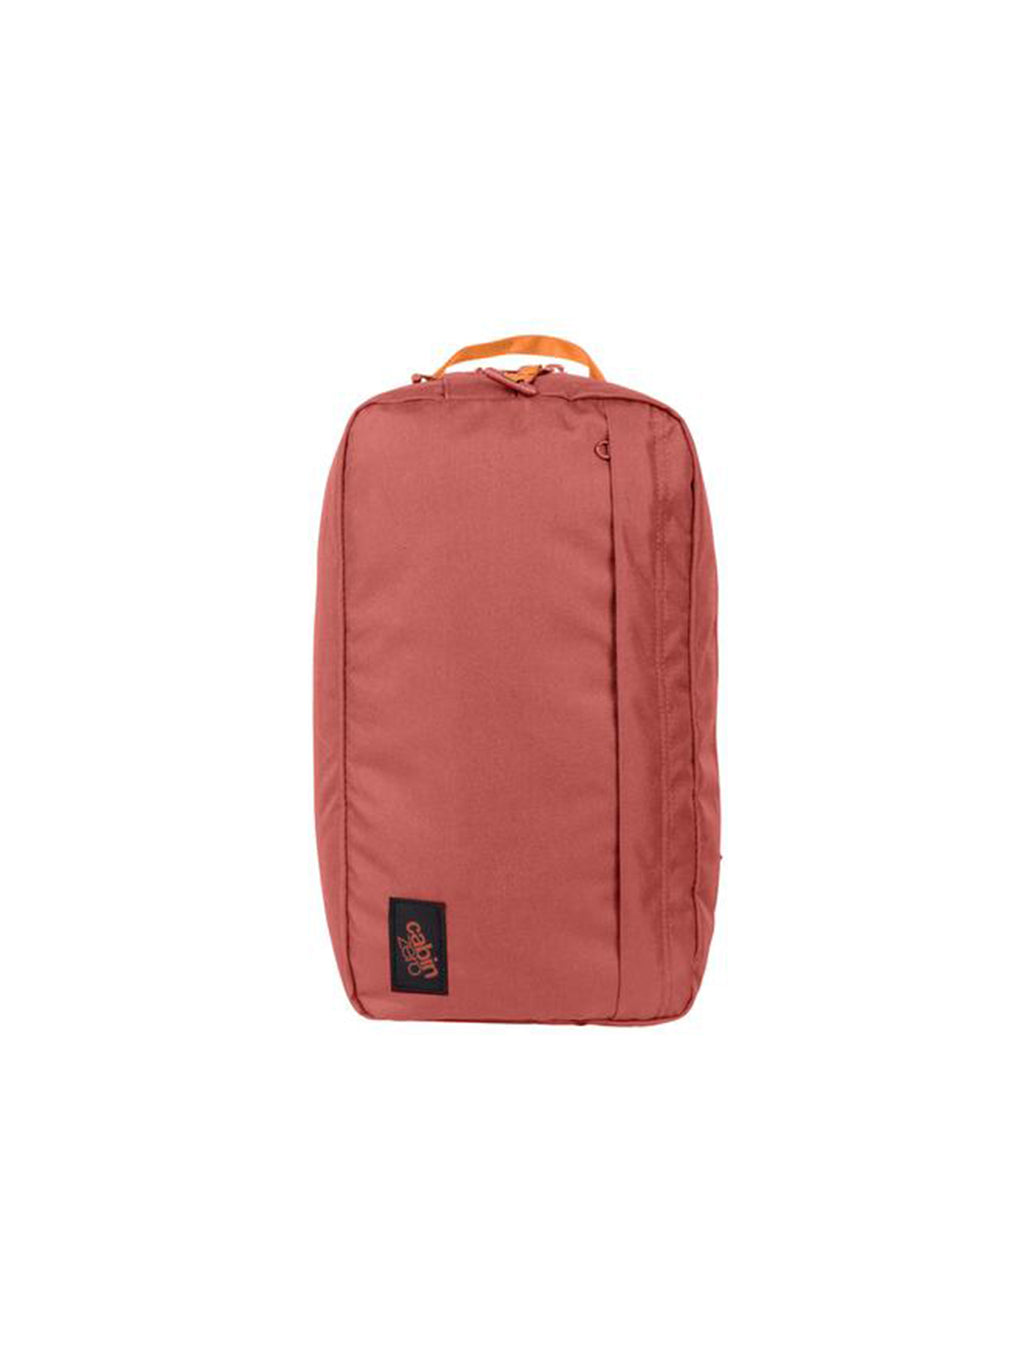 Cabinzero Classic Cross Body 11L in Serengeti Sunrise Color